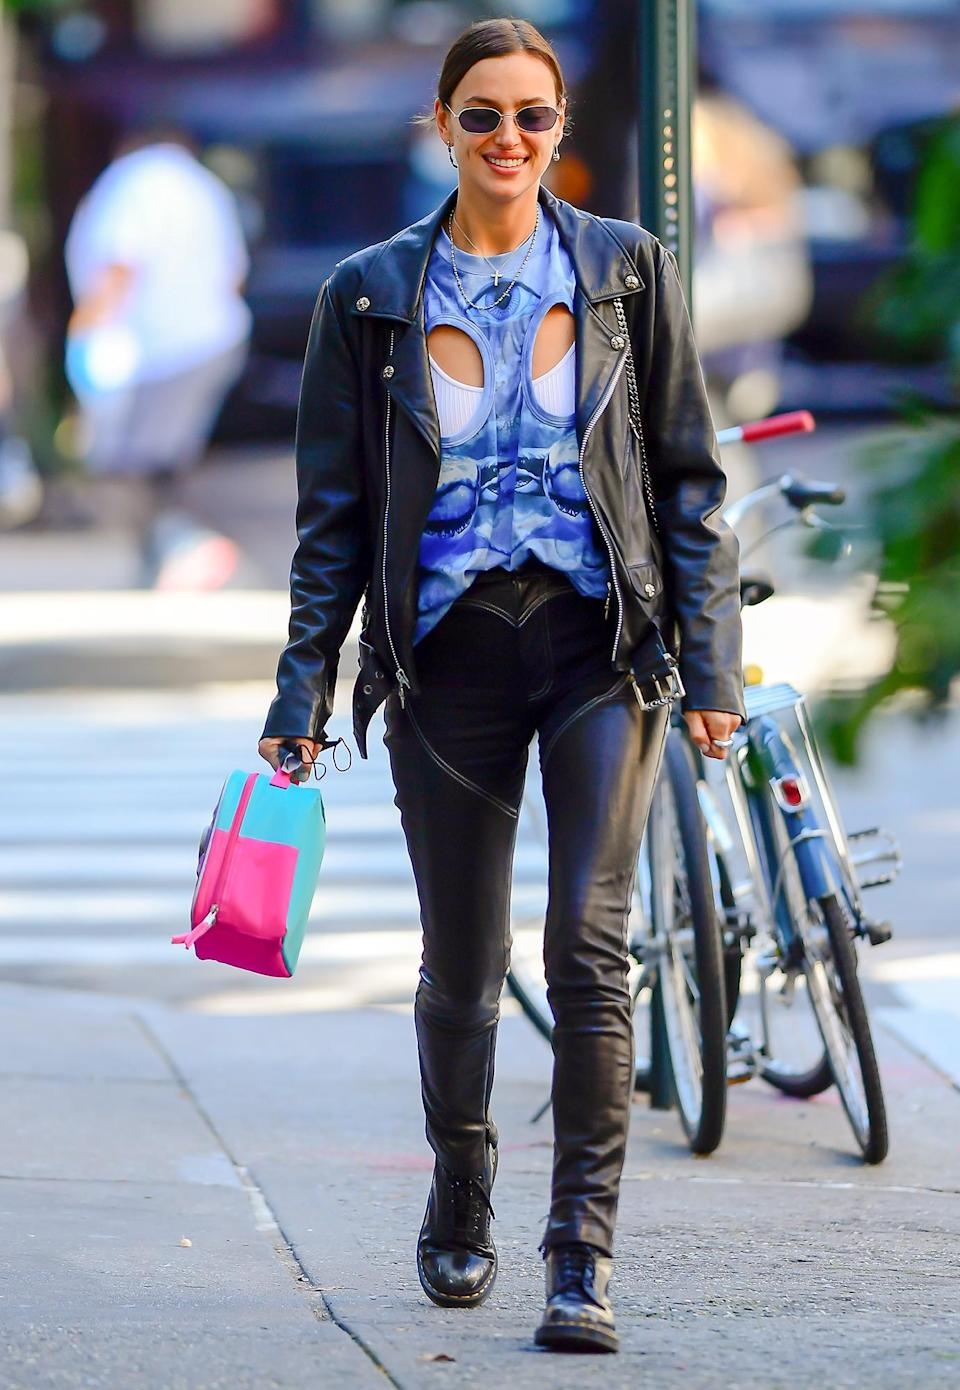 <p>Irina Shayk wears a blue cutout top while out on Wednesday in N.Y.C.'s Soho area. </p>